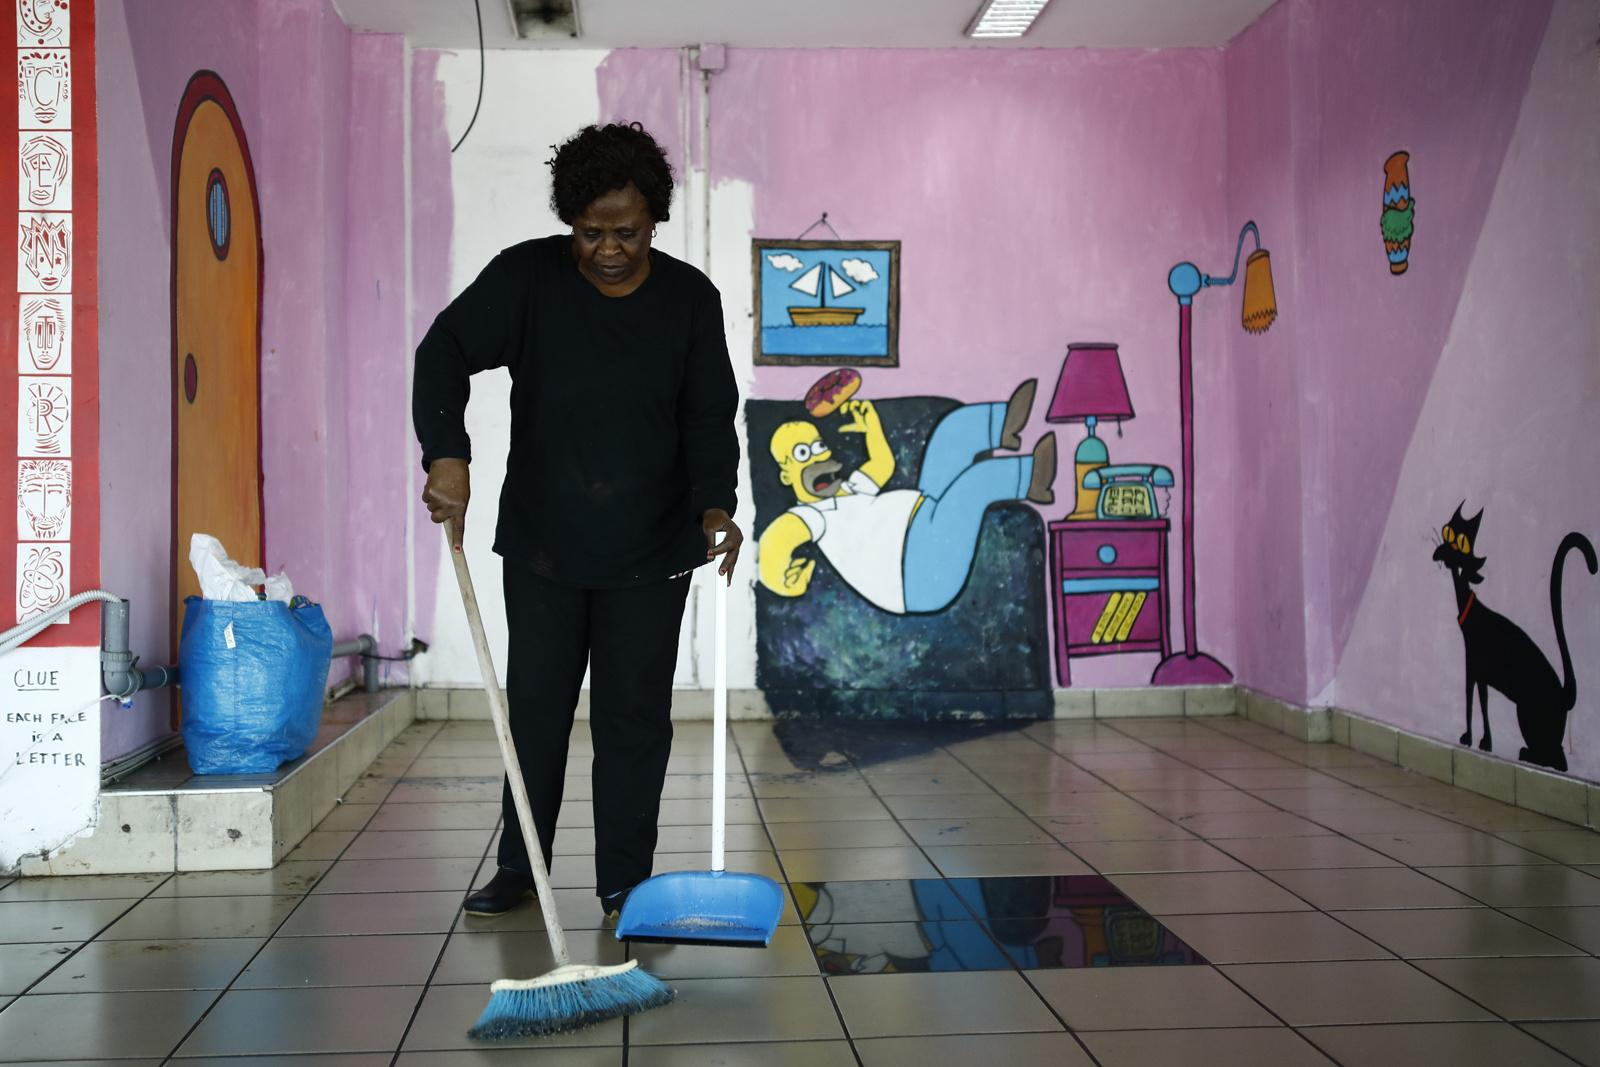 A woman cleans the floor in a space that functions as a gallery displaying street art, close to bus terminals on an upper floor of the Central Bus Station in Tel Aviv, Israel May 29, 2019.